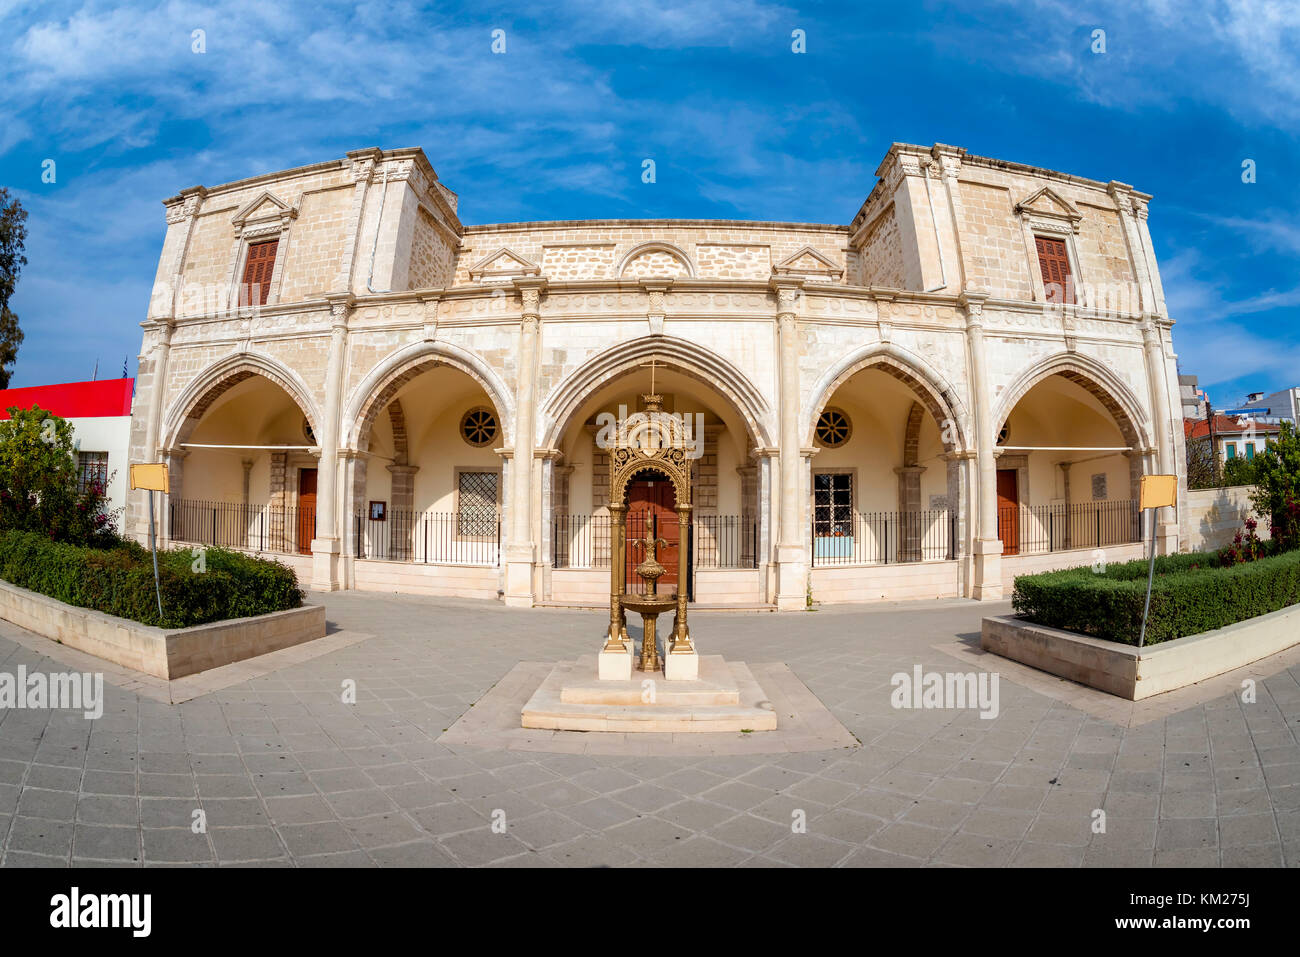 The Convent of Sisters of St. Joseph of the Apparition. Larnaca, Cyprus. - Stock Image